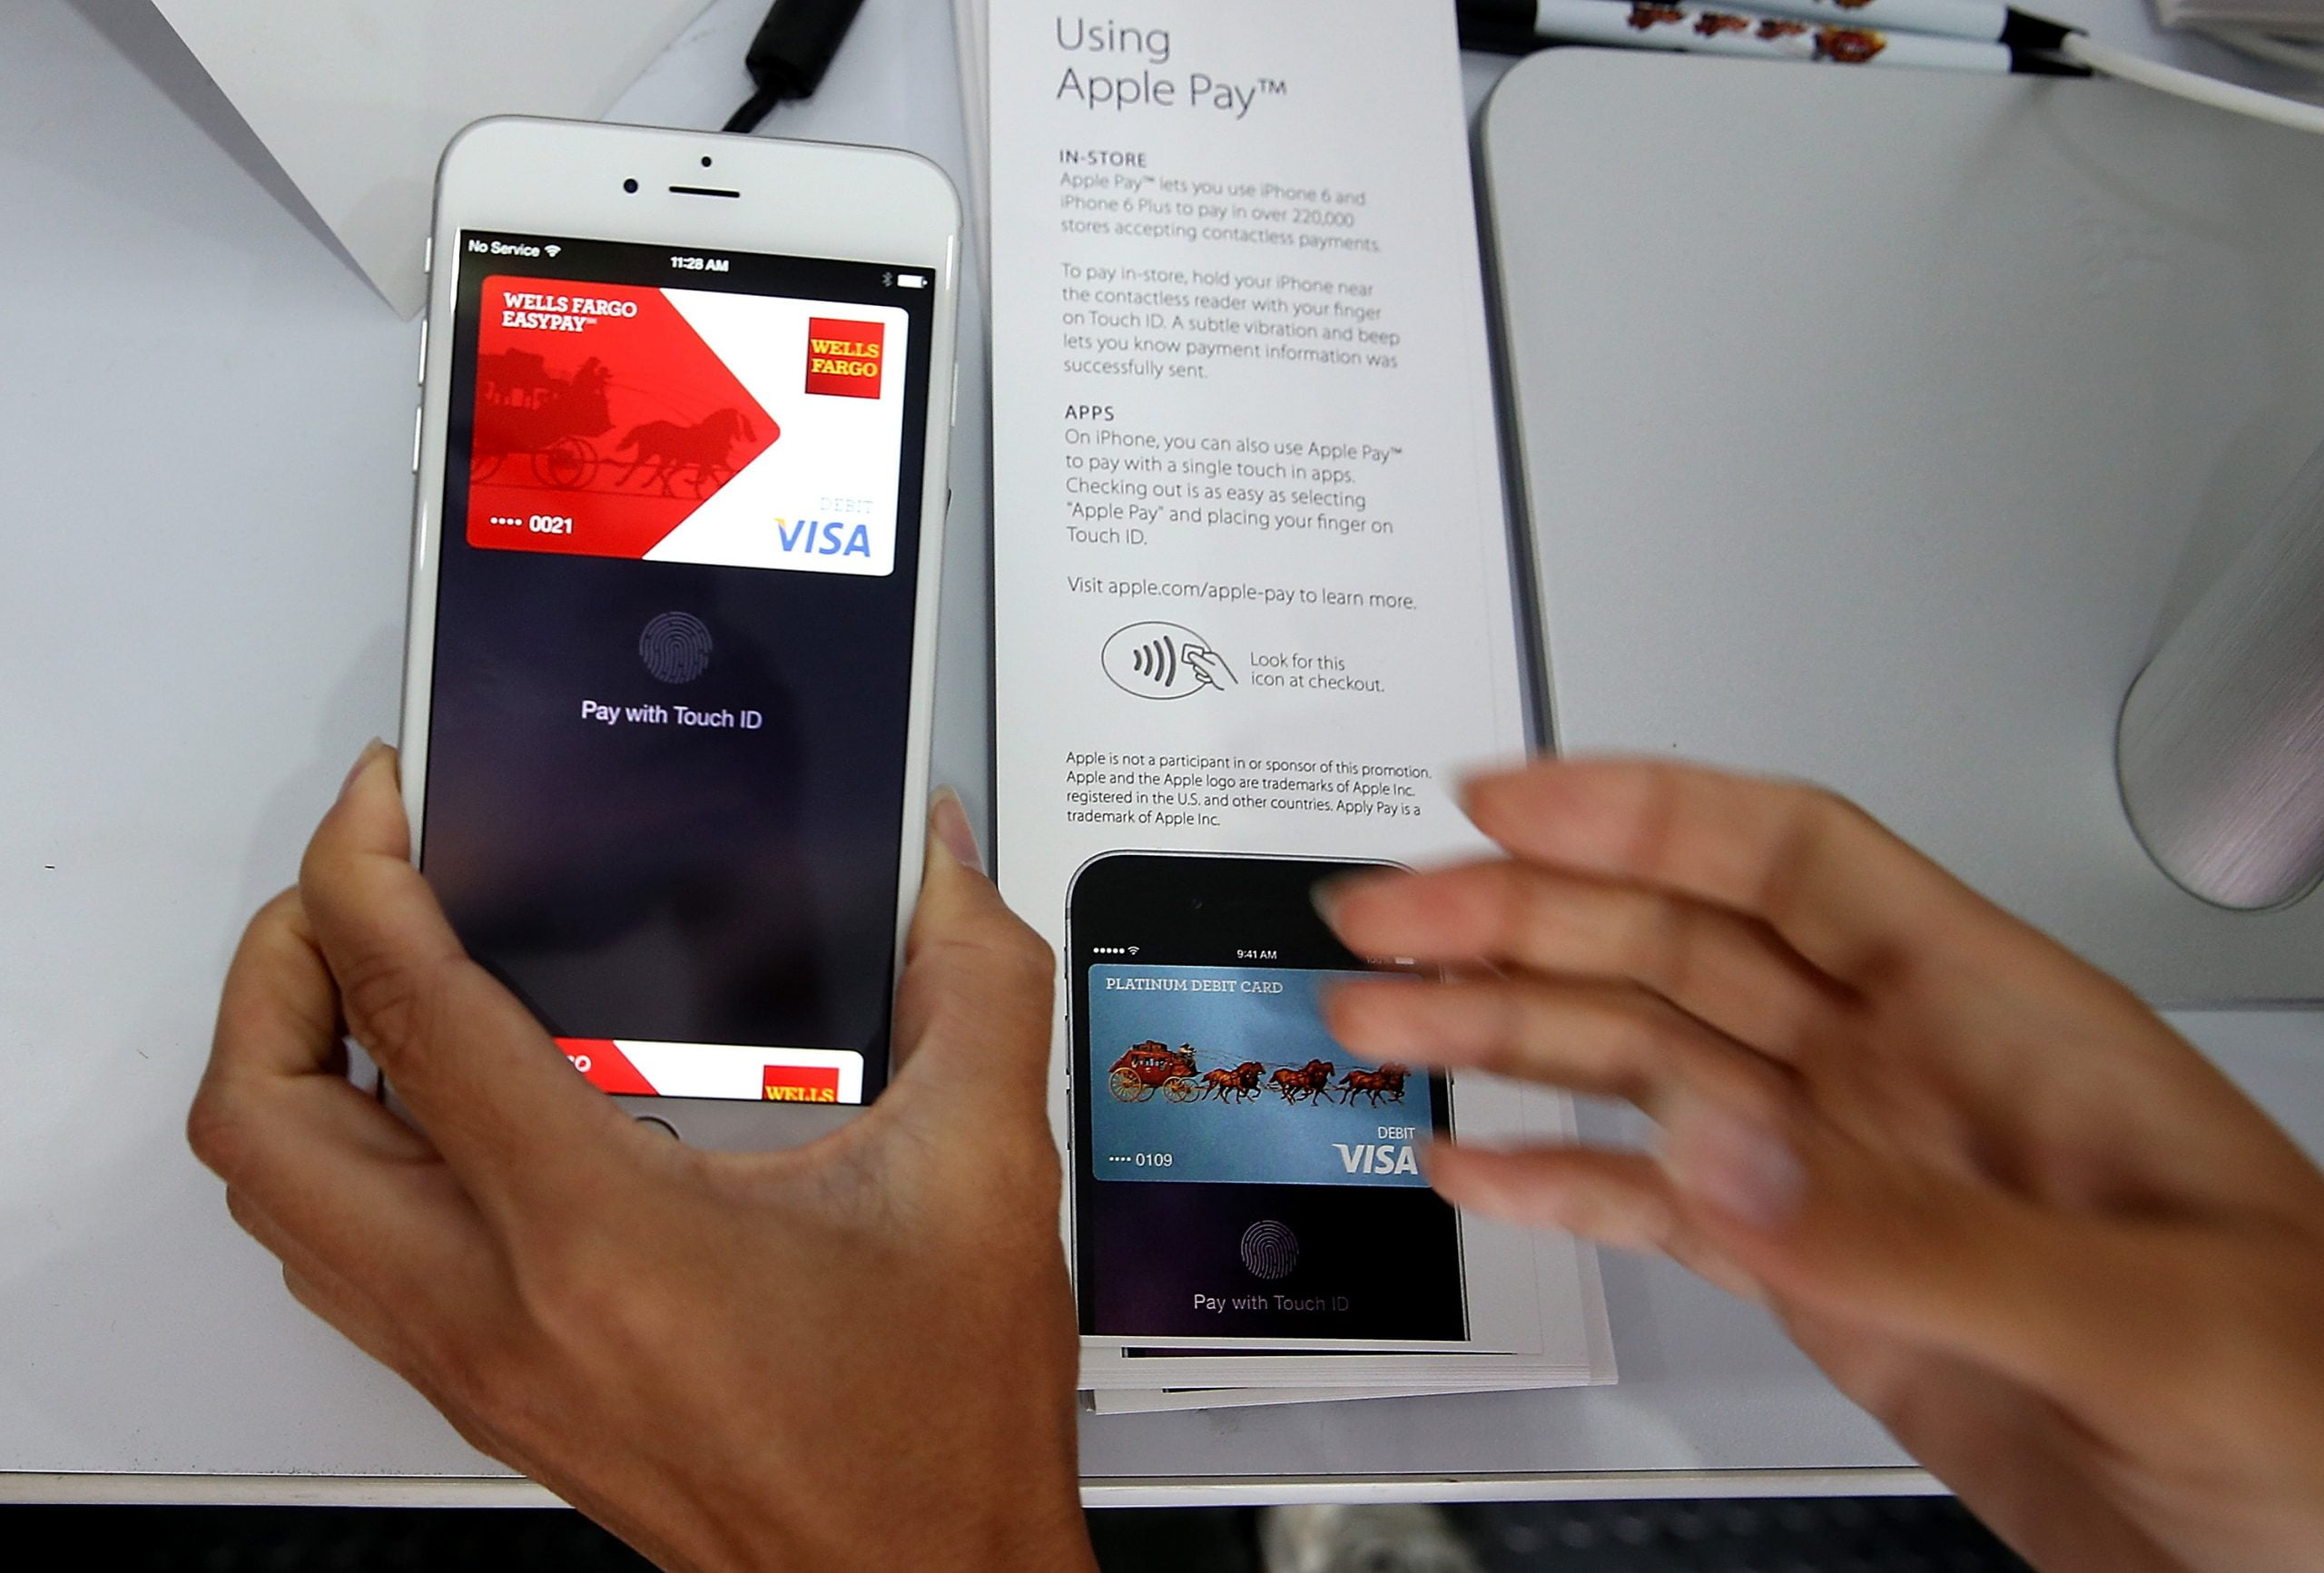 Apple will earn 0.15% for every transaction made with Apple Pay